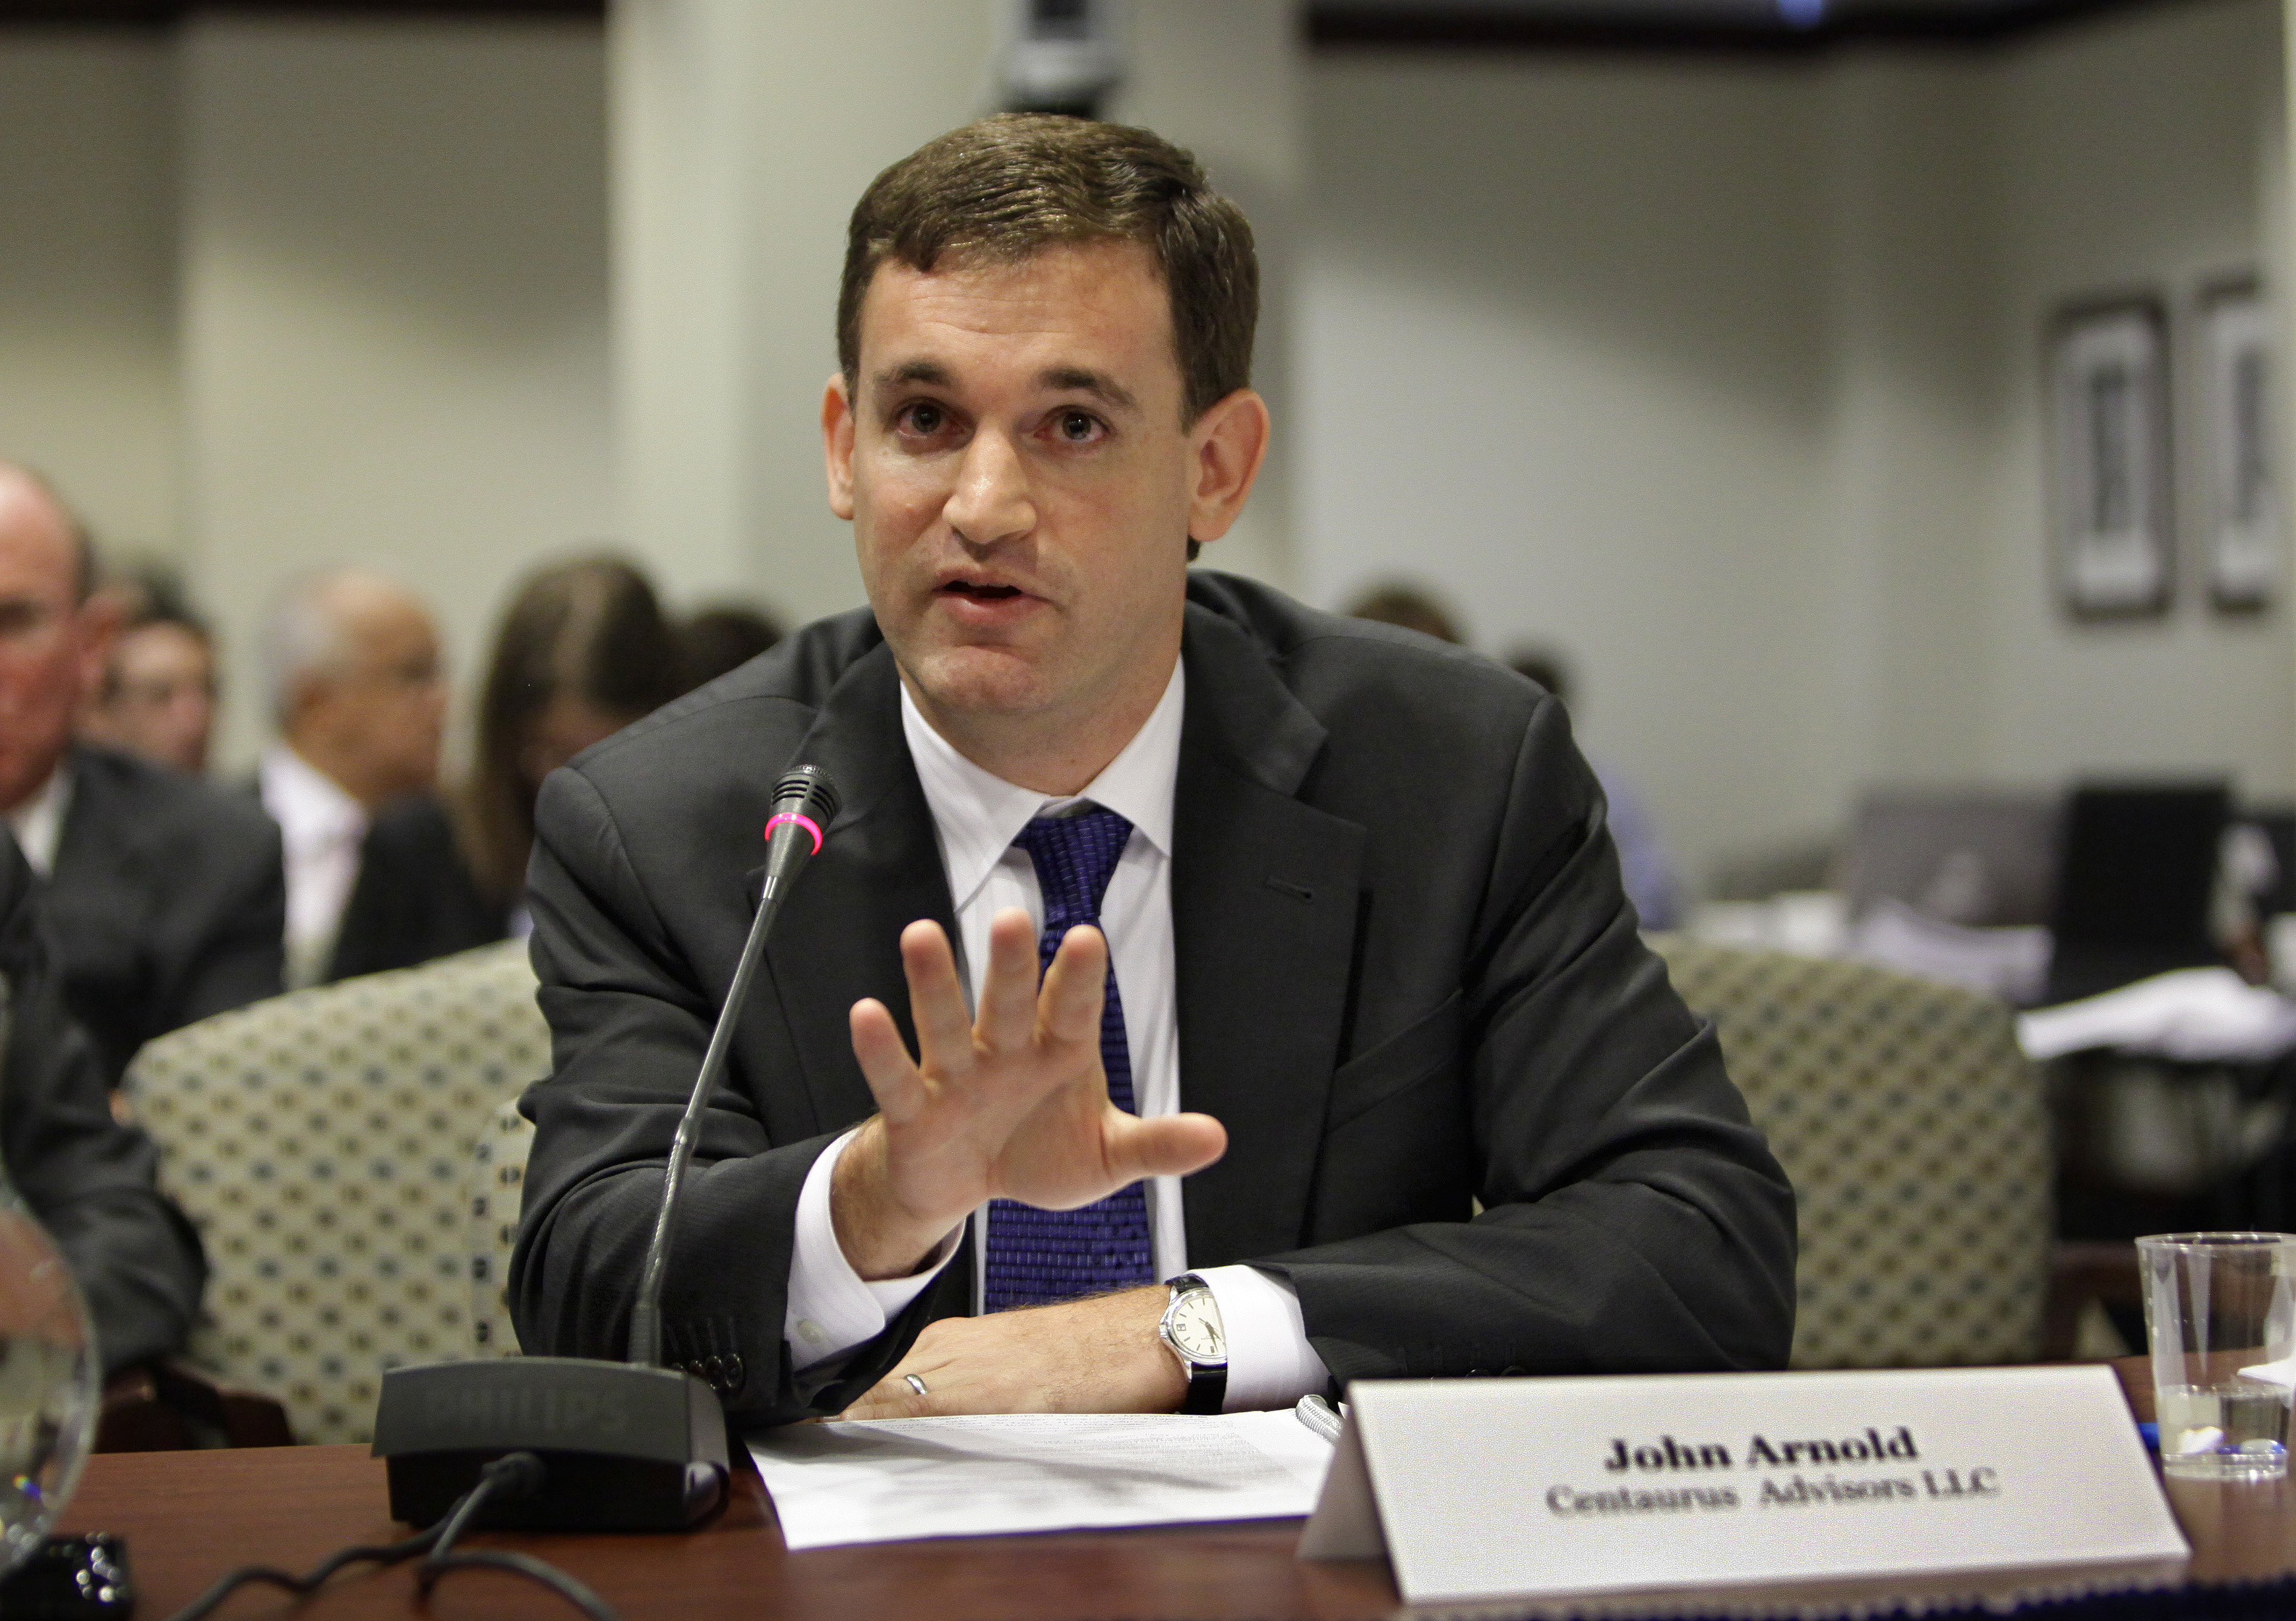 Photo: ELECTION 2018 REDISTRICTING MONEY |John Arnold testifies before the The Commodity Futures Trading Commission in Washington, D.C. - AP